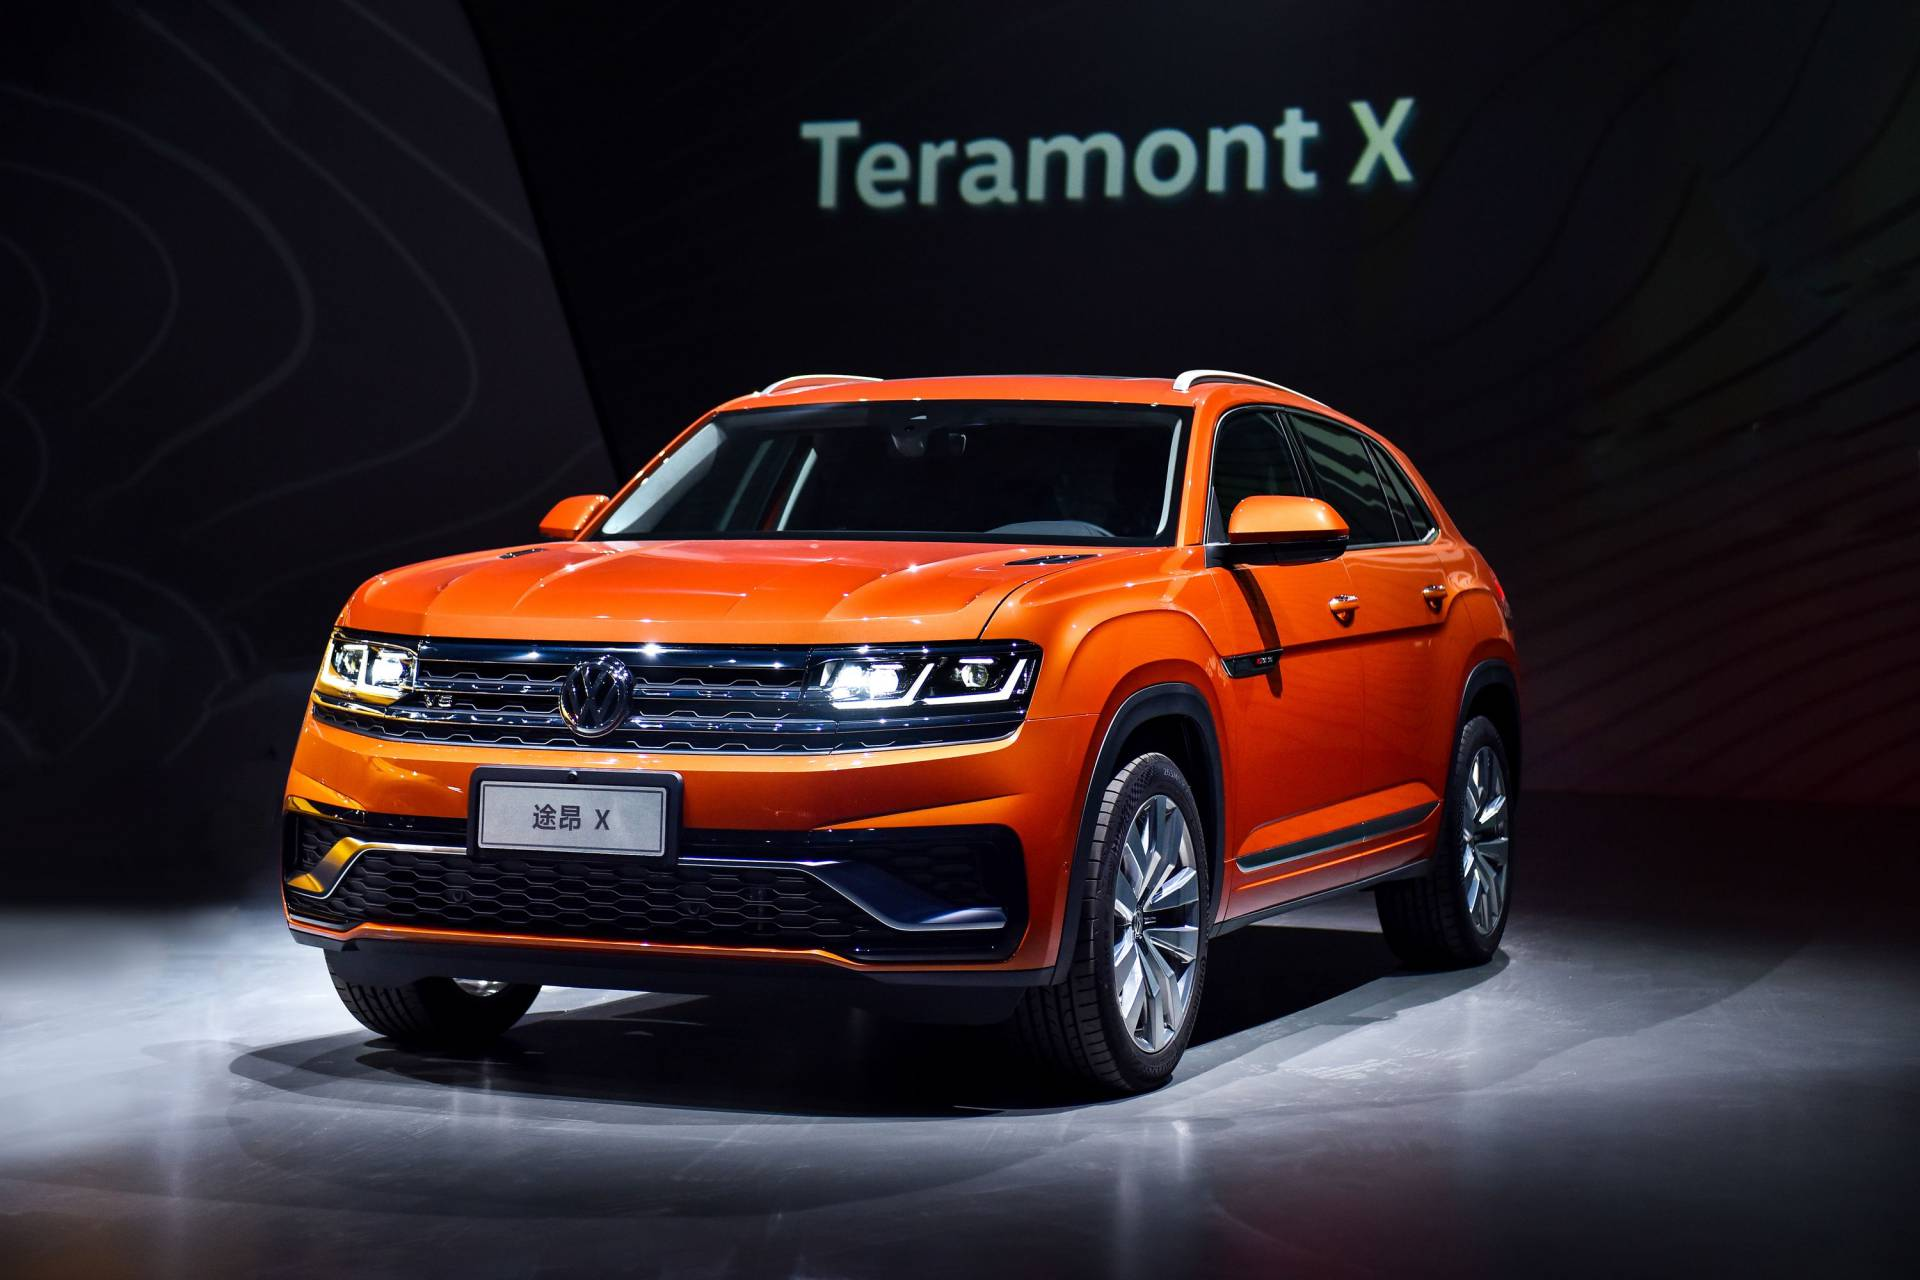 German car manufacturer Volkswagen AG has introduced two new crossover/SUV models at a special event in China